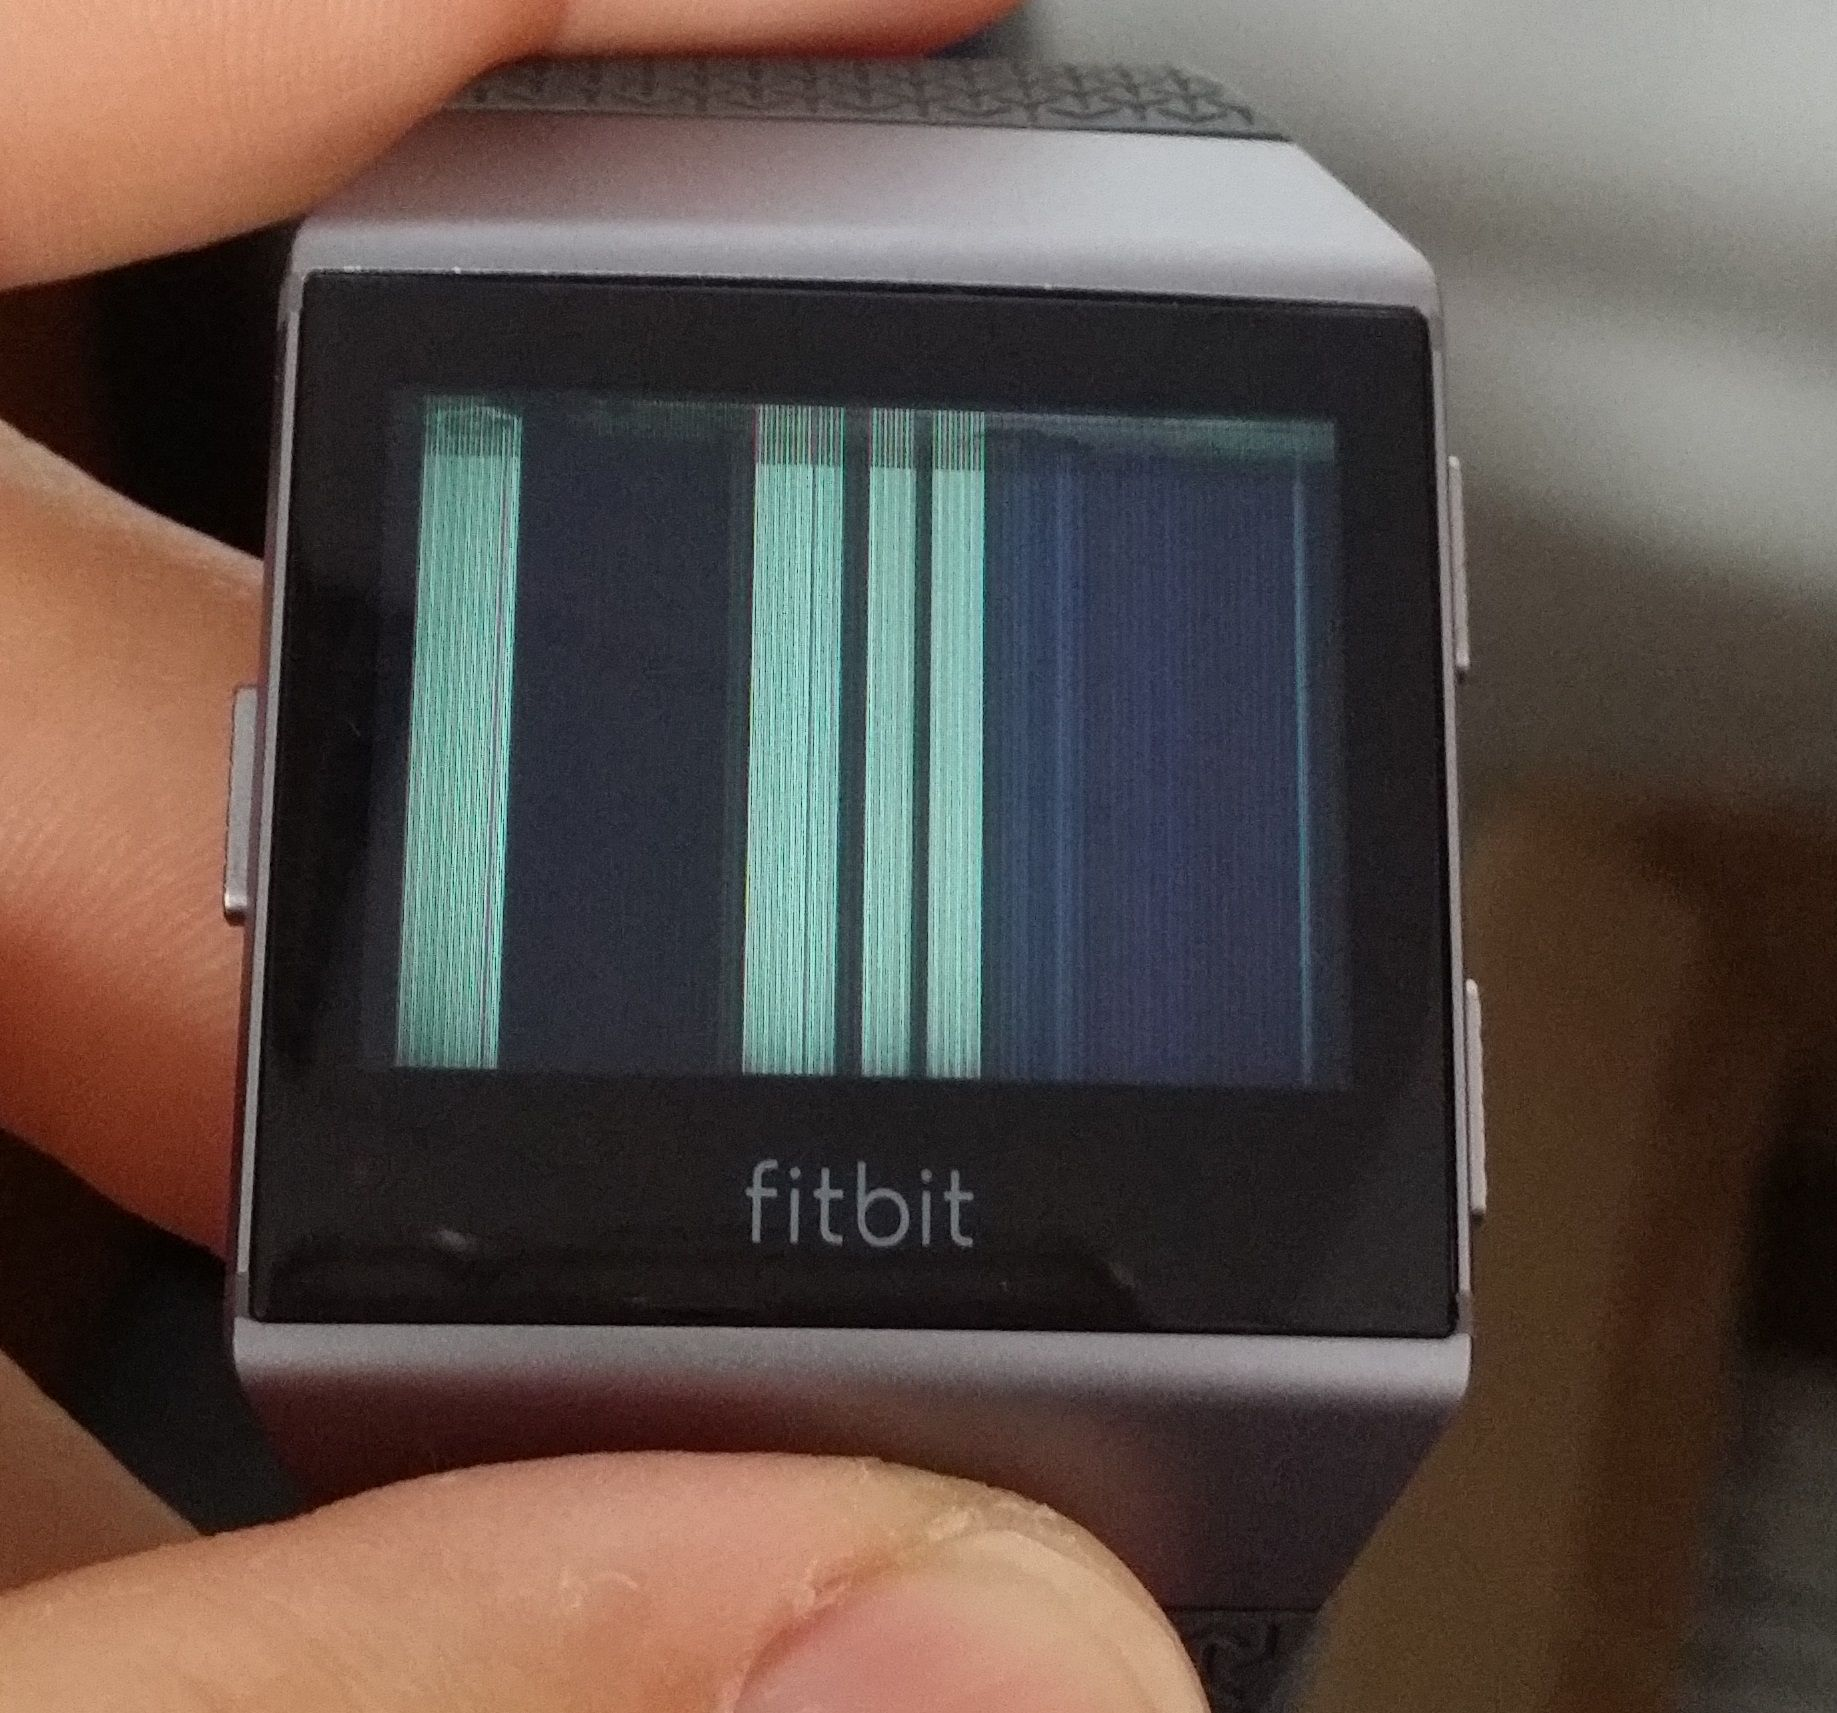 Display issues - Fitbit Community